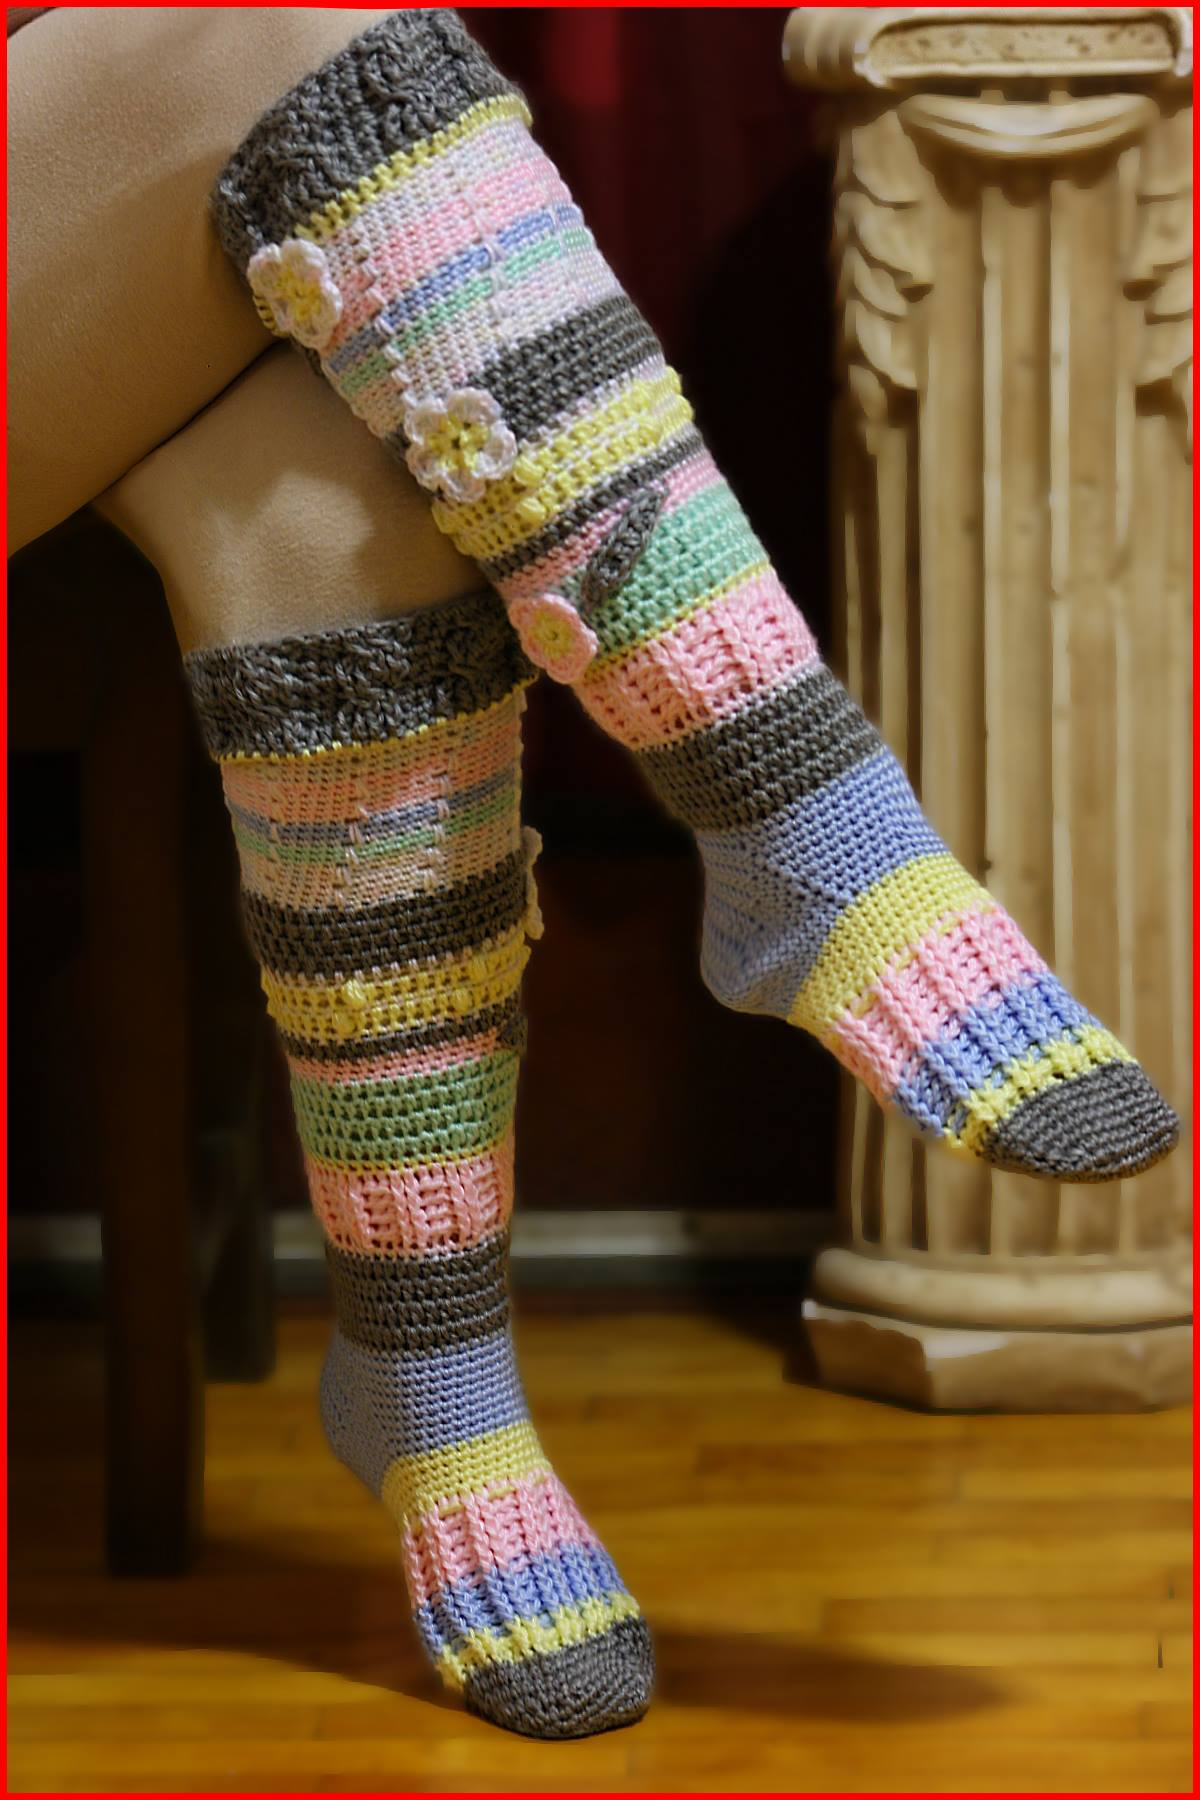 Knitting Pattern For Over The Knee Socks : Crochet Tutorial: Knee-High Socks   YARNutopia by Nadia Fuad